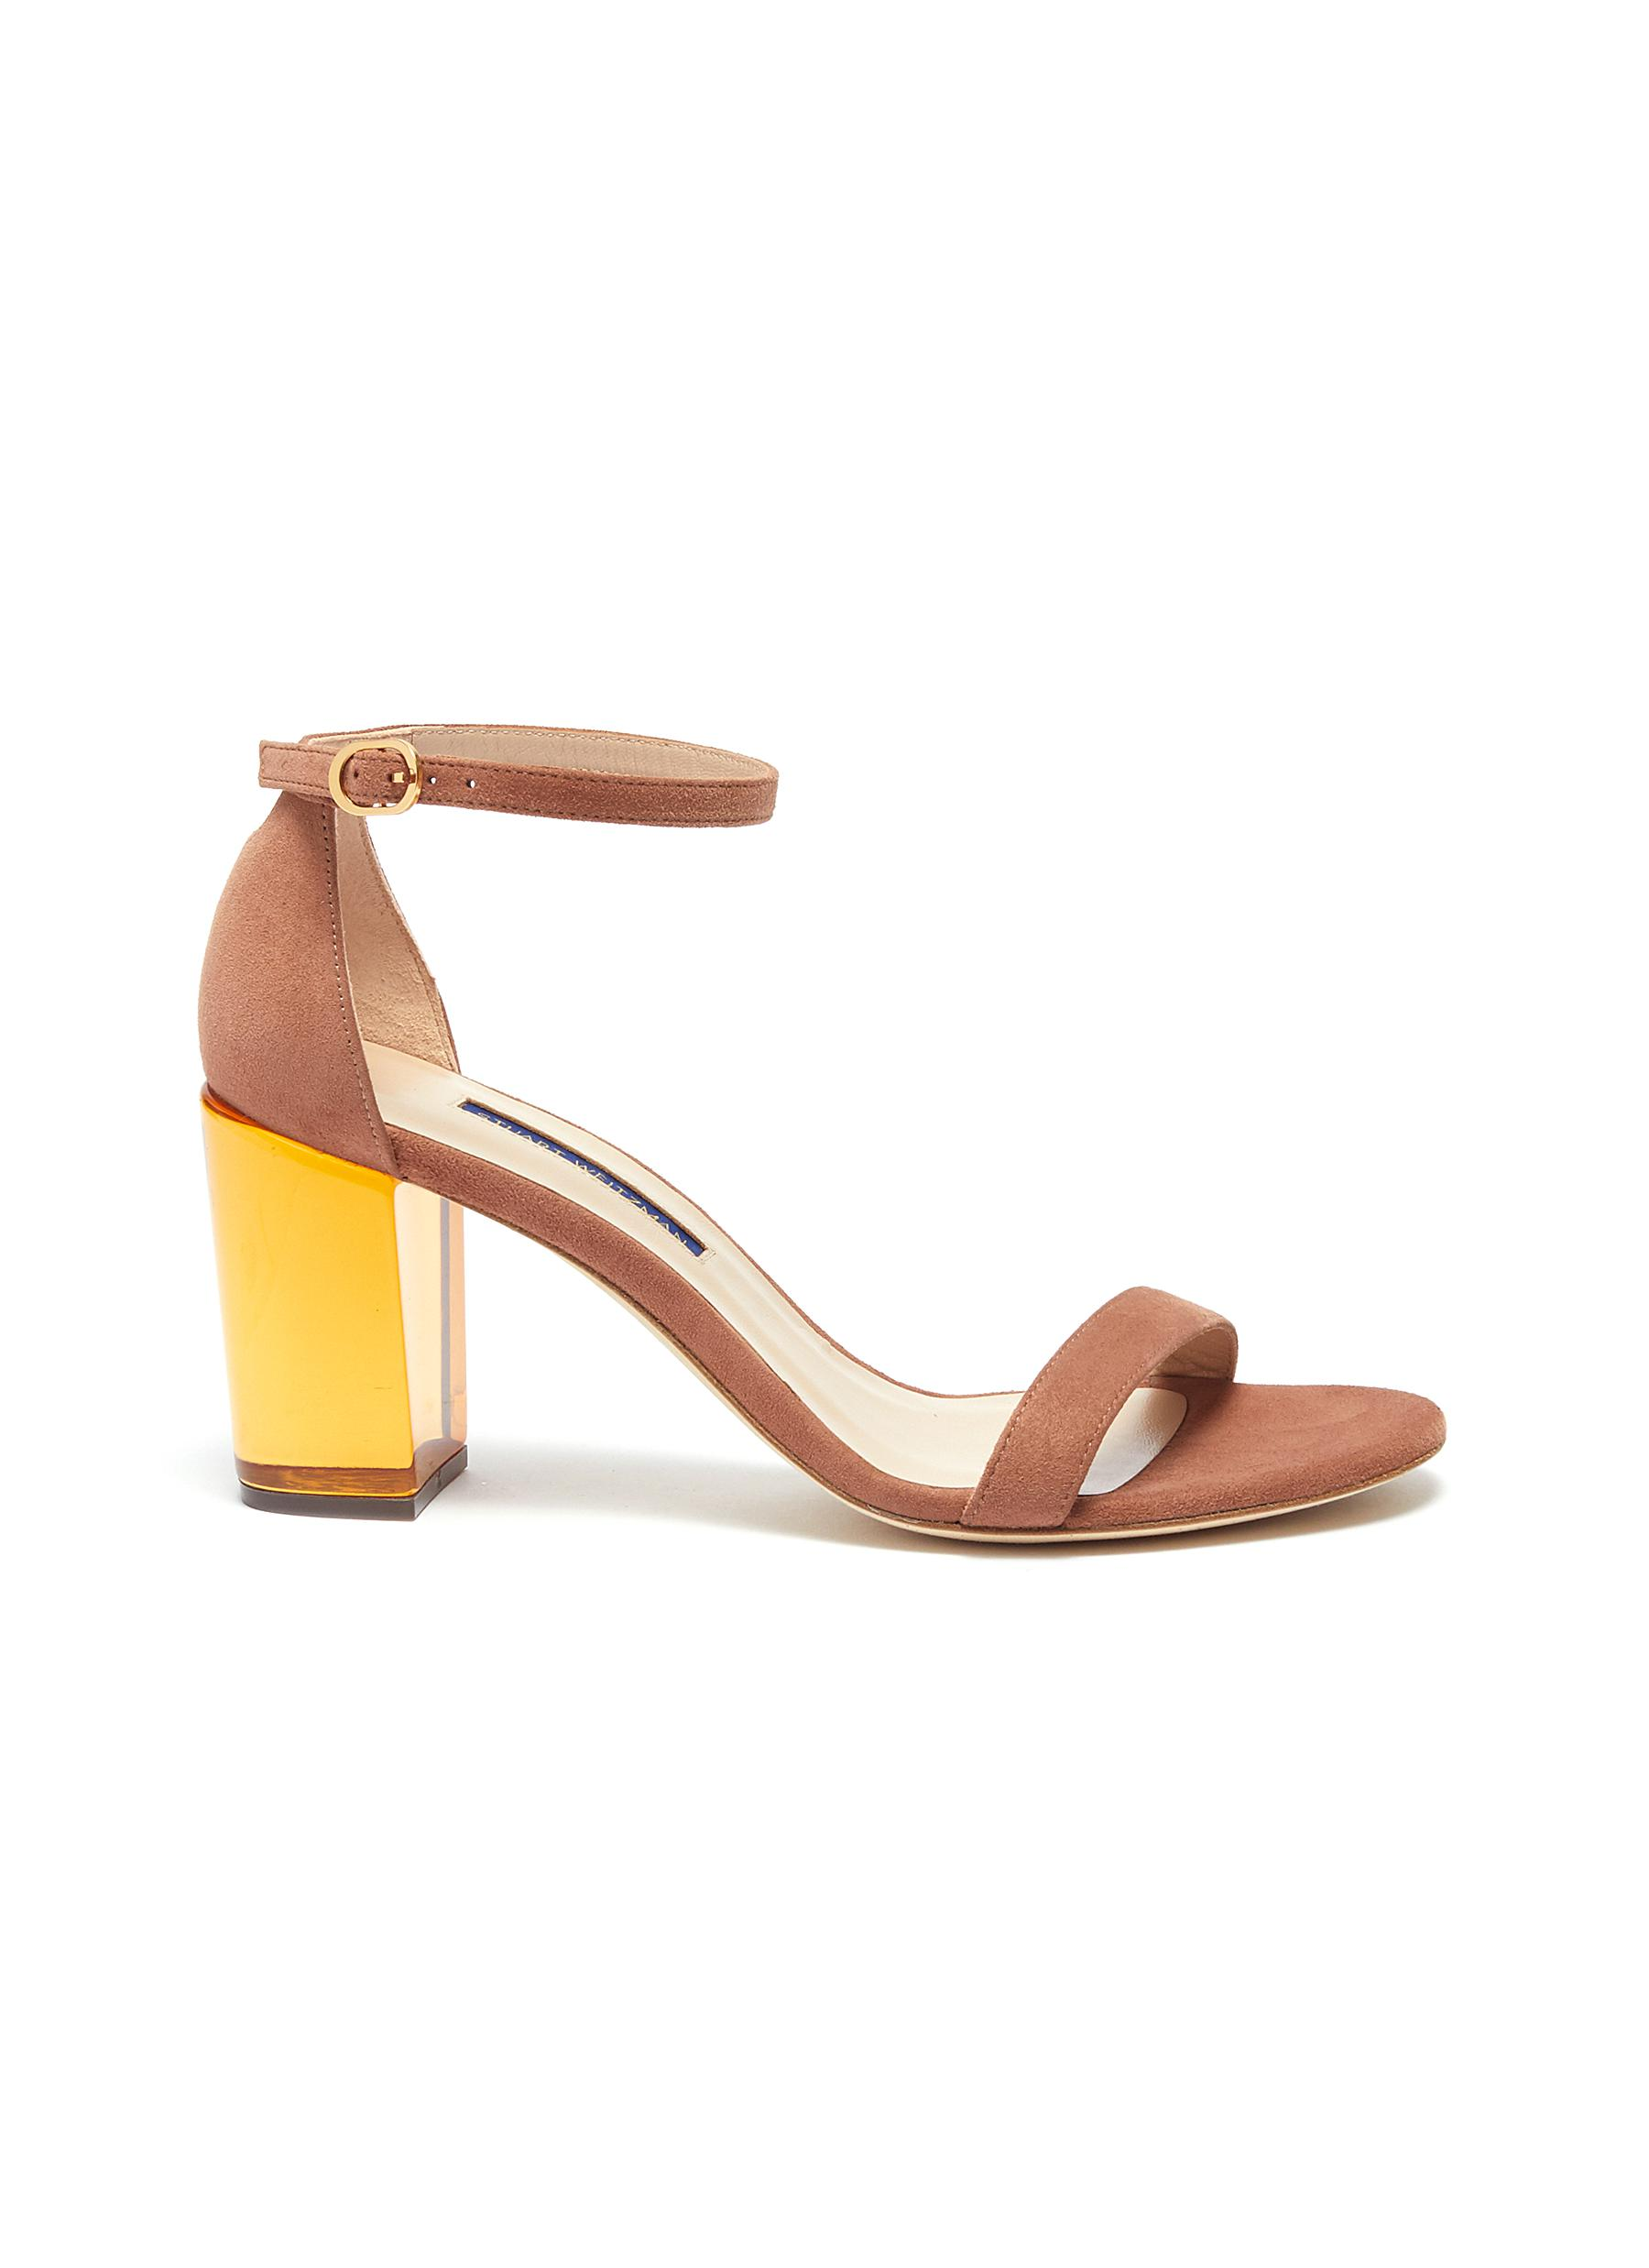 Nearlynude clear heel suede ankle strap sandals by Stuart Weitzman